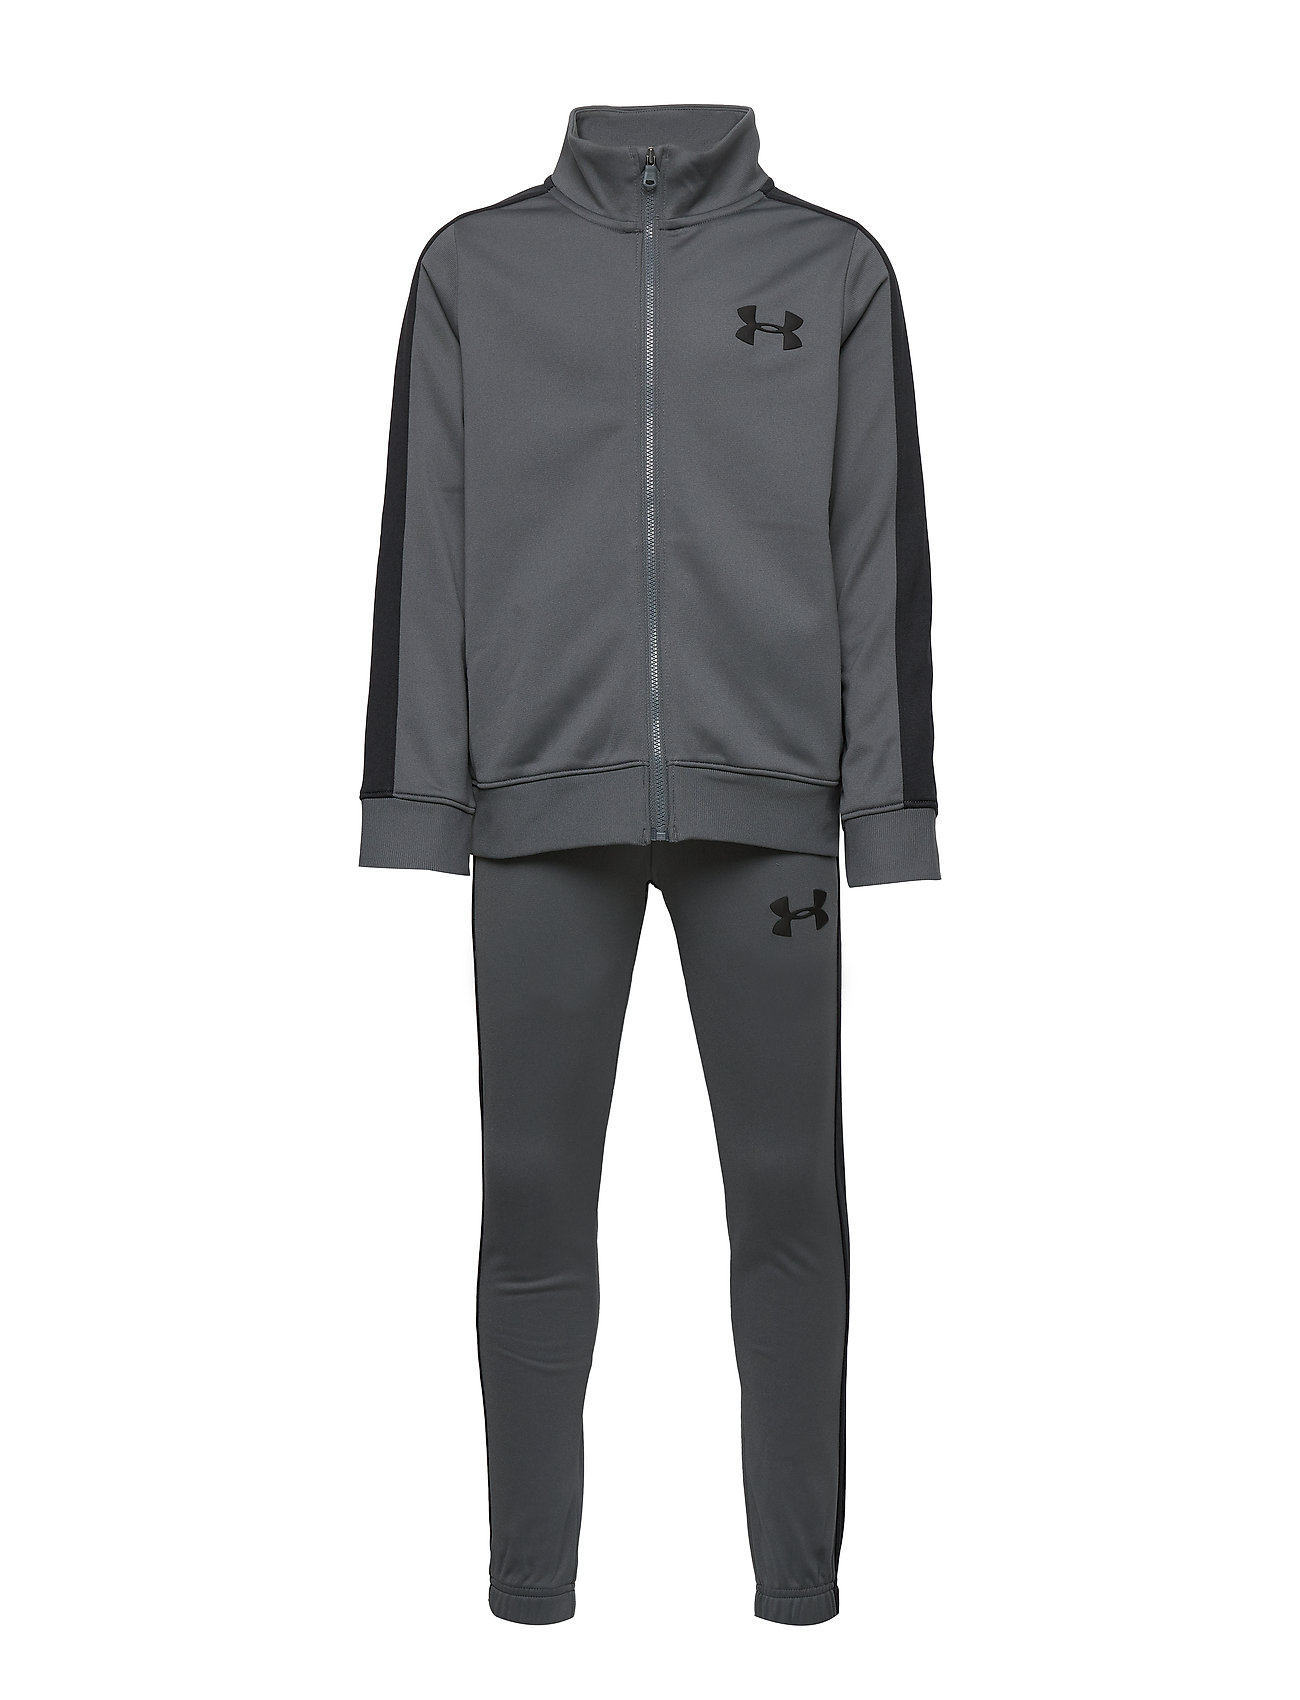 Image of Knit Track Suit Tracksuit Grå Under Armour (3342686647)